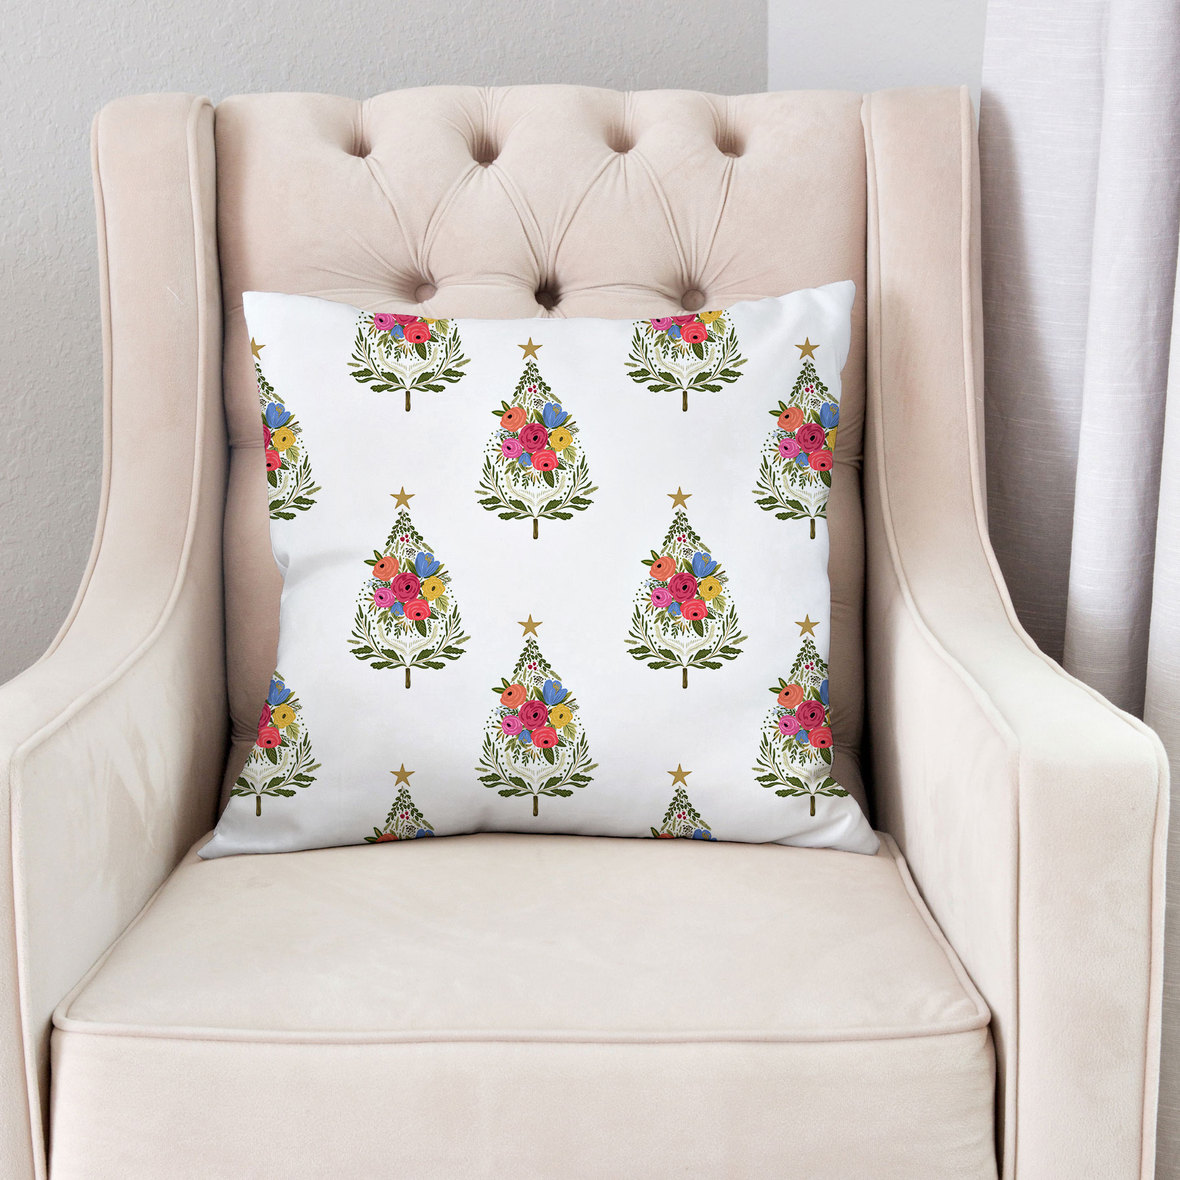 Pillow-on-Pink-Chair-Large-Trees